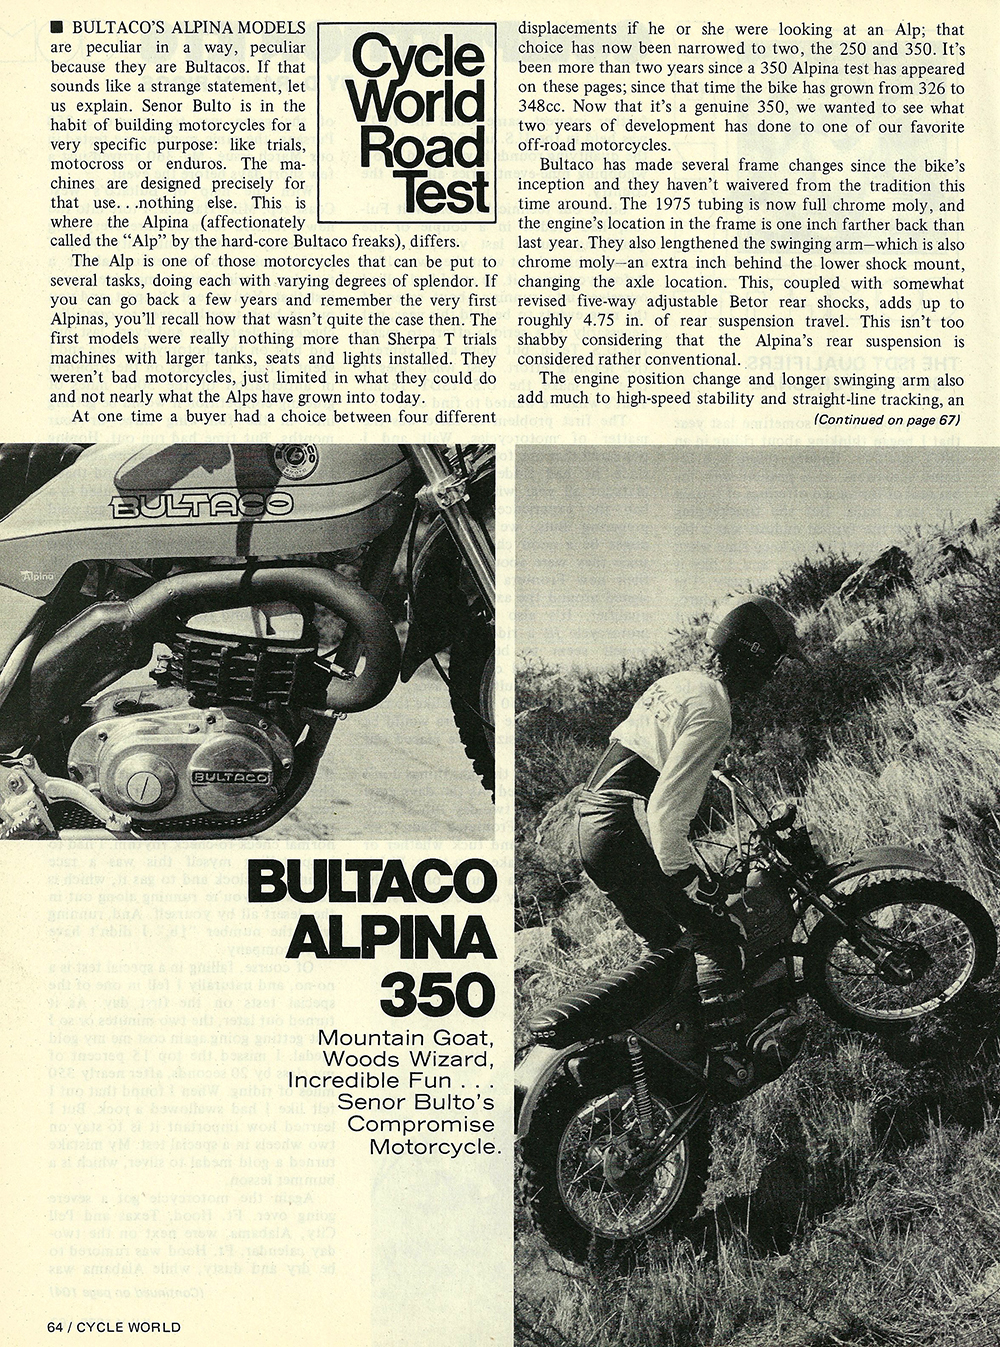 1975 Bultaco Alpina 350 road test 01.jpg